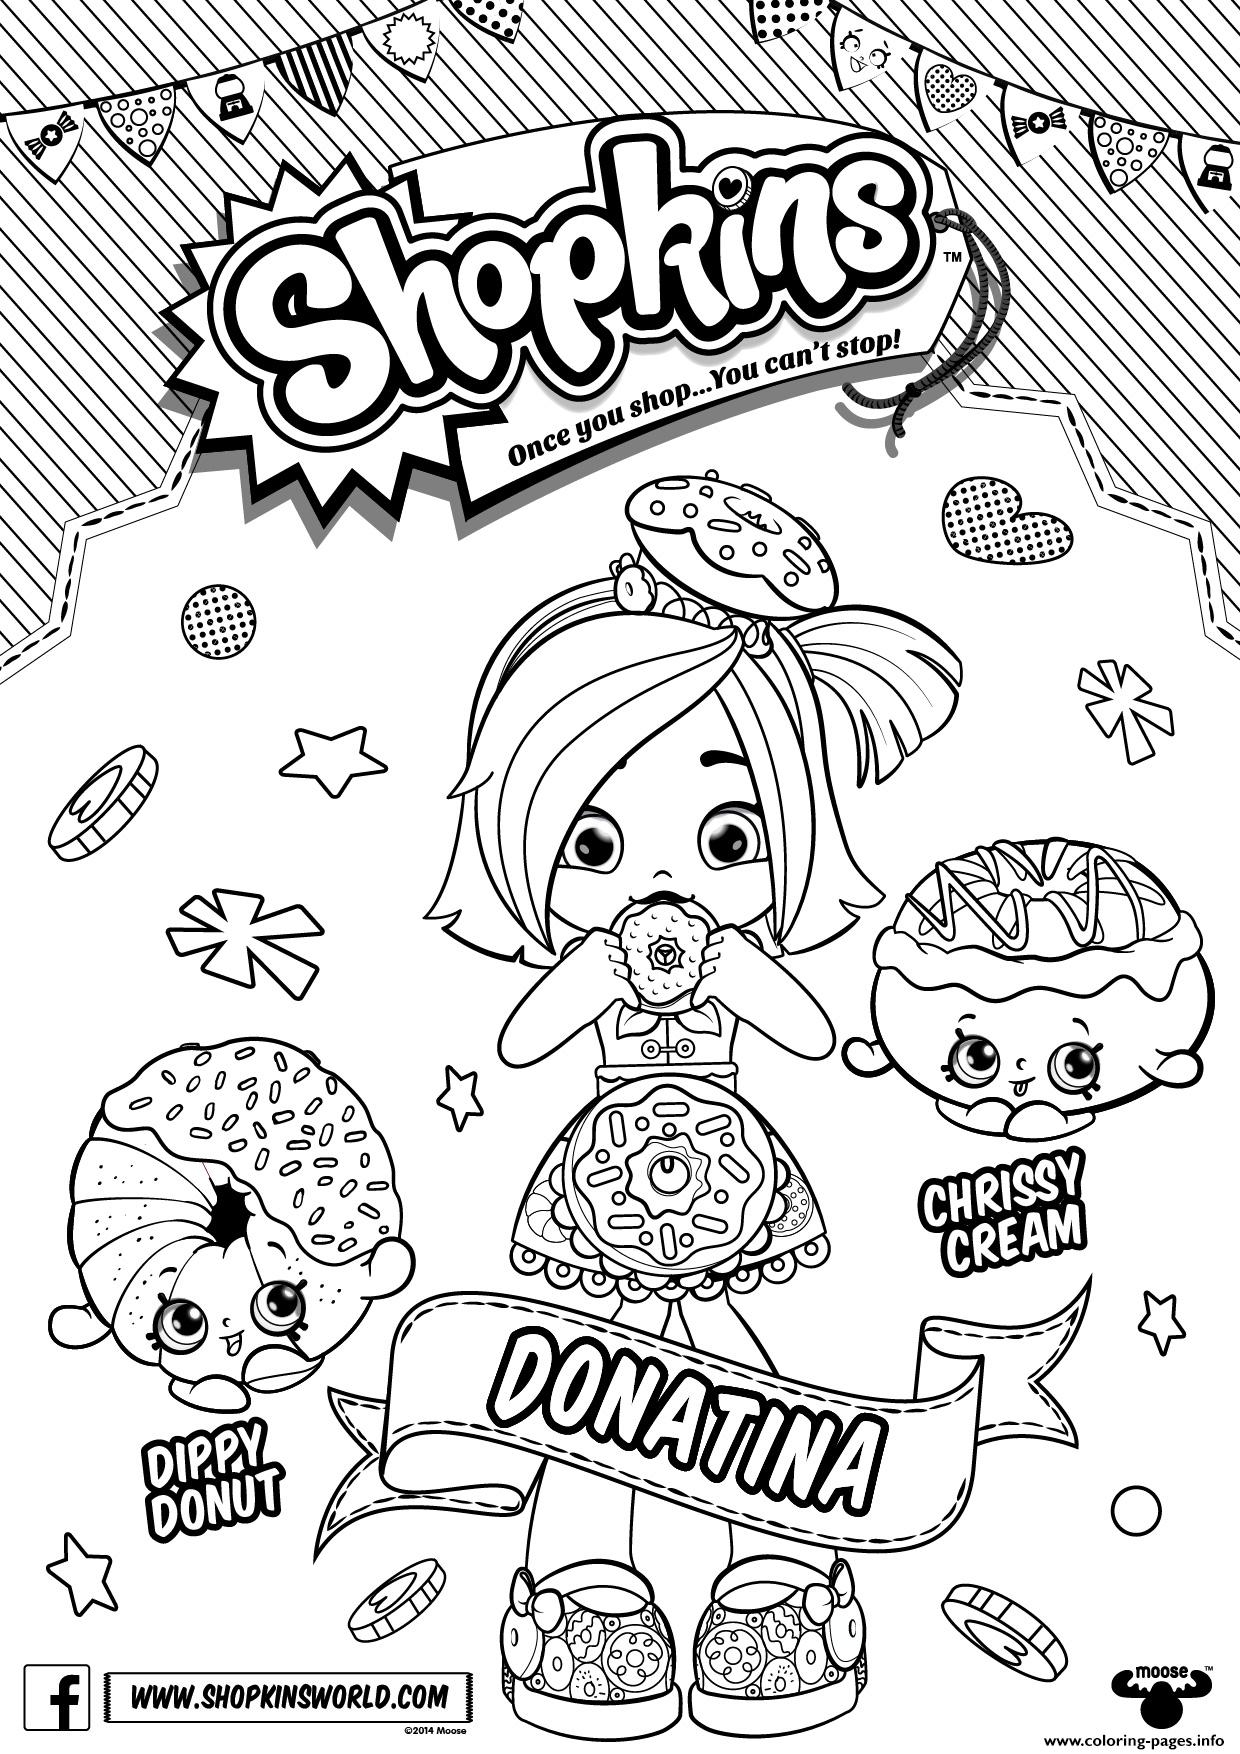 shoppies coloring pages - donatina shopkins shoppies printable coloring pages book